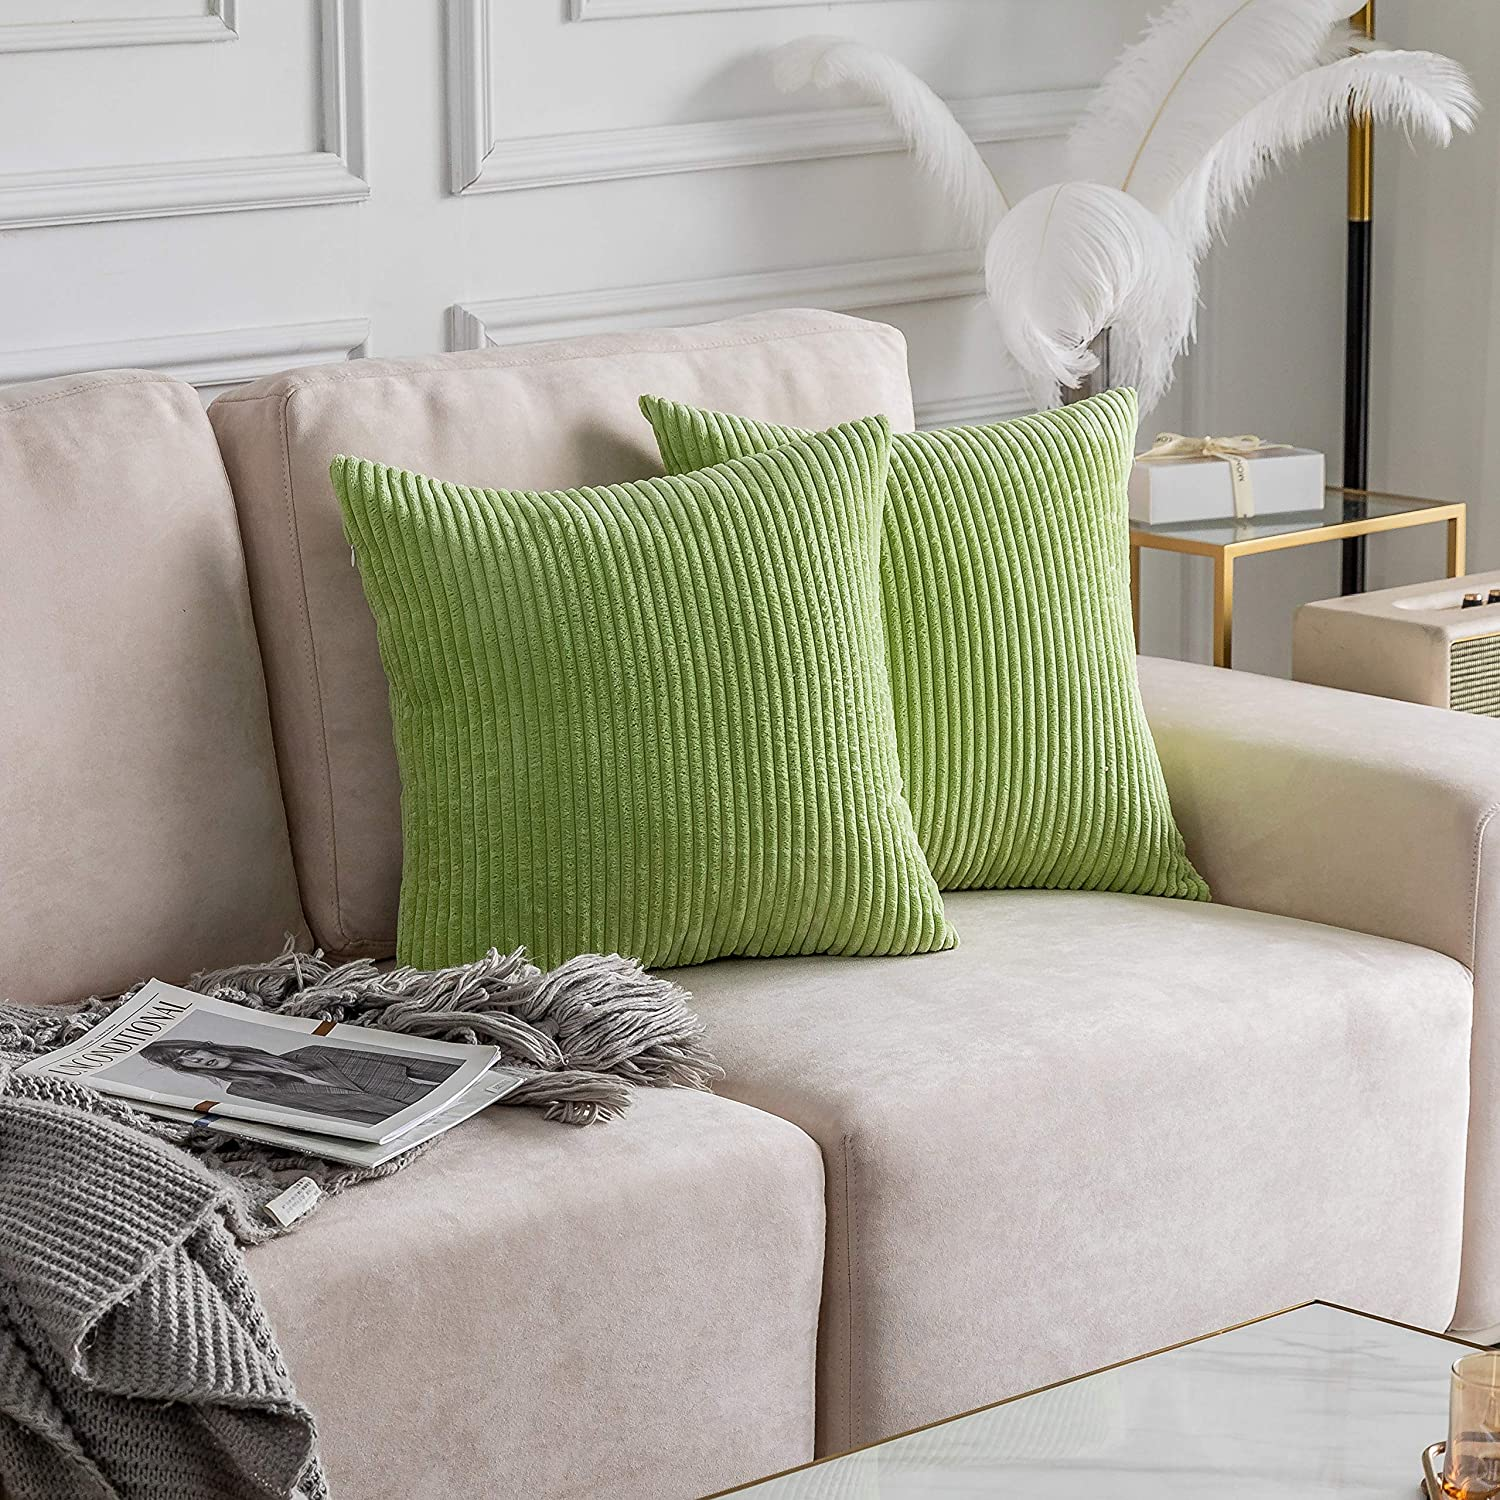 Home Brilliant Decorative Throw Pillowcases Striped Super Soft Corduroy Couch Accent Pillow Covers for Wedding Gift? Set of 2, Apple Green, 22x22 Inches(55cm)